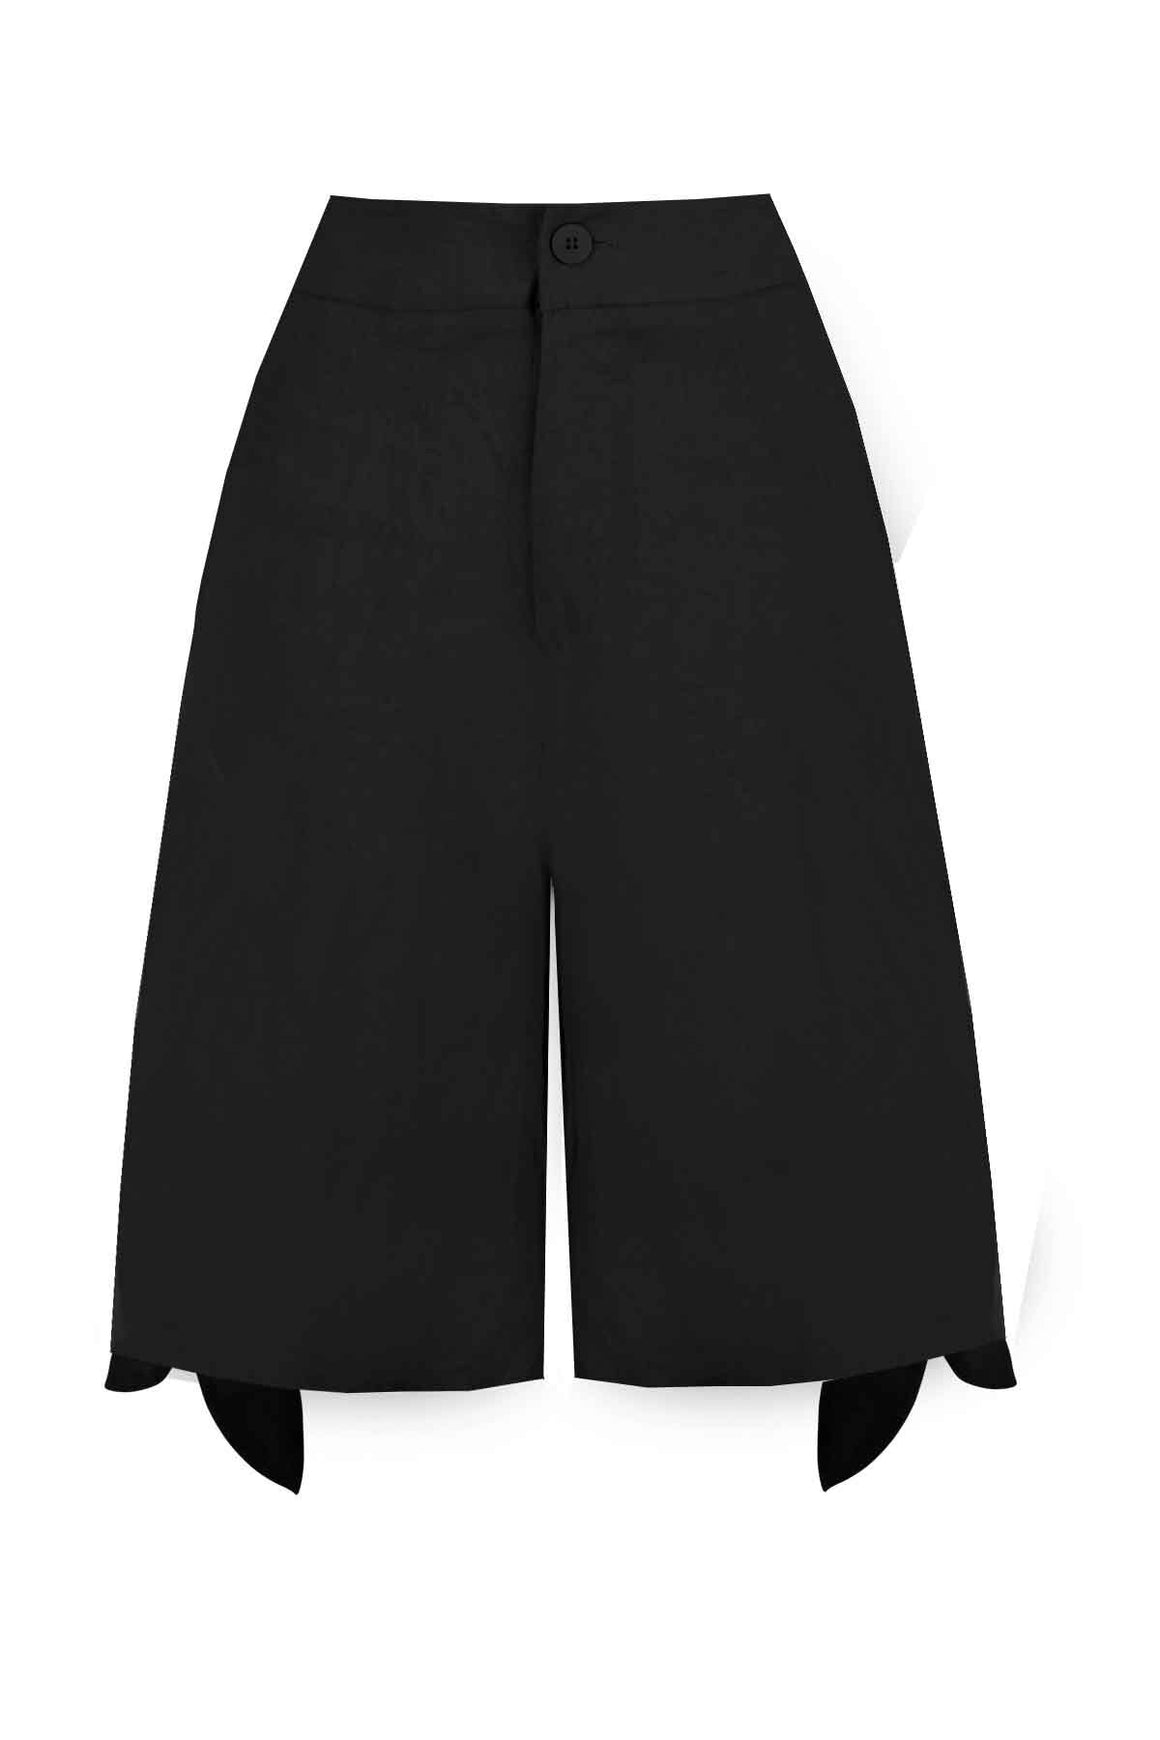 Curate Get A Leg Over Pant - Black